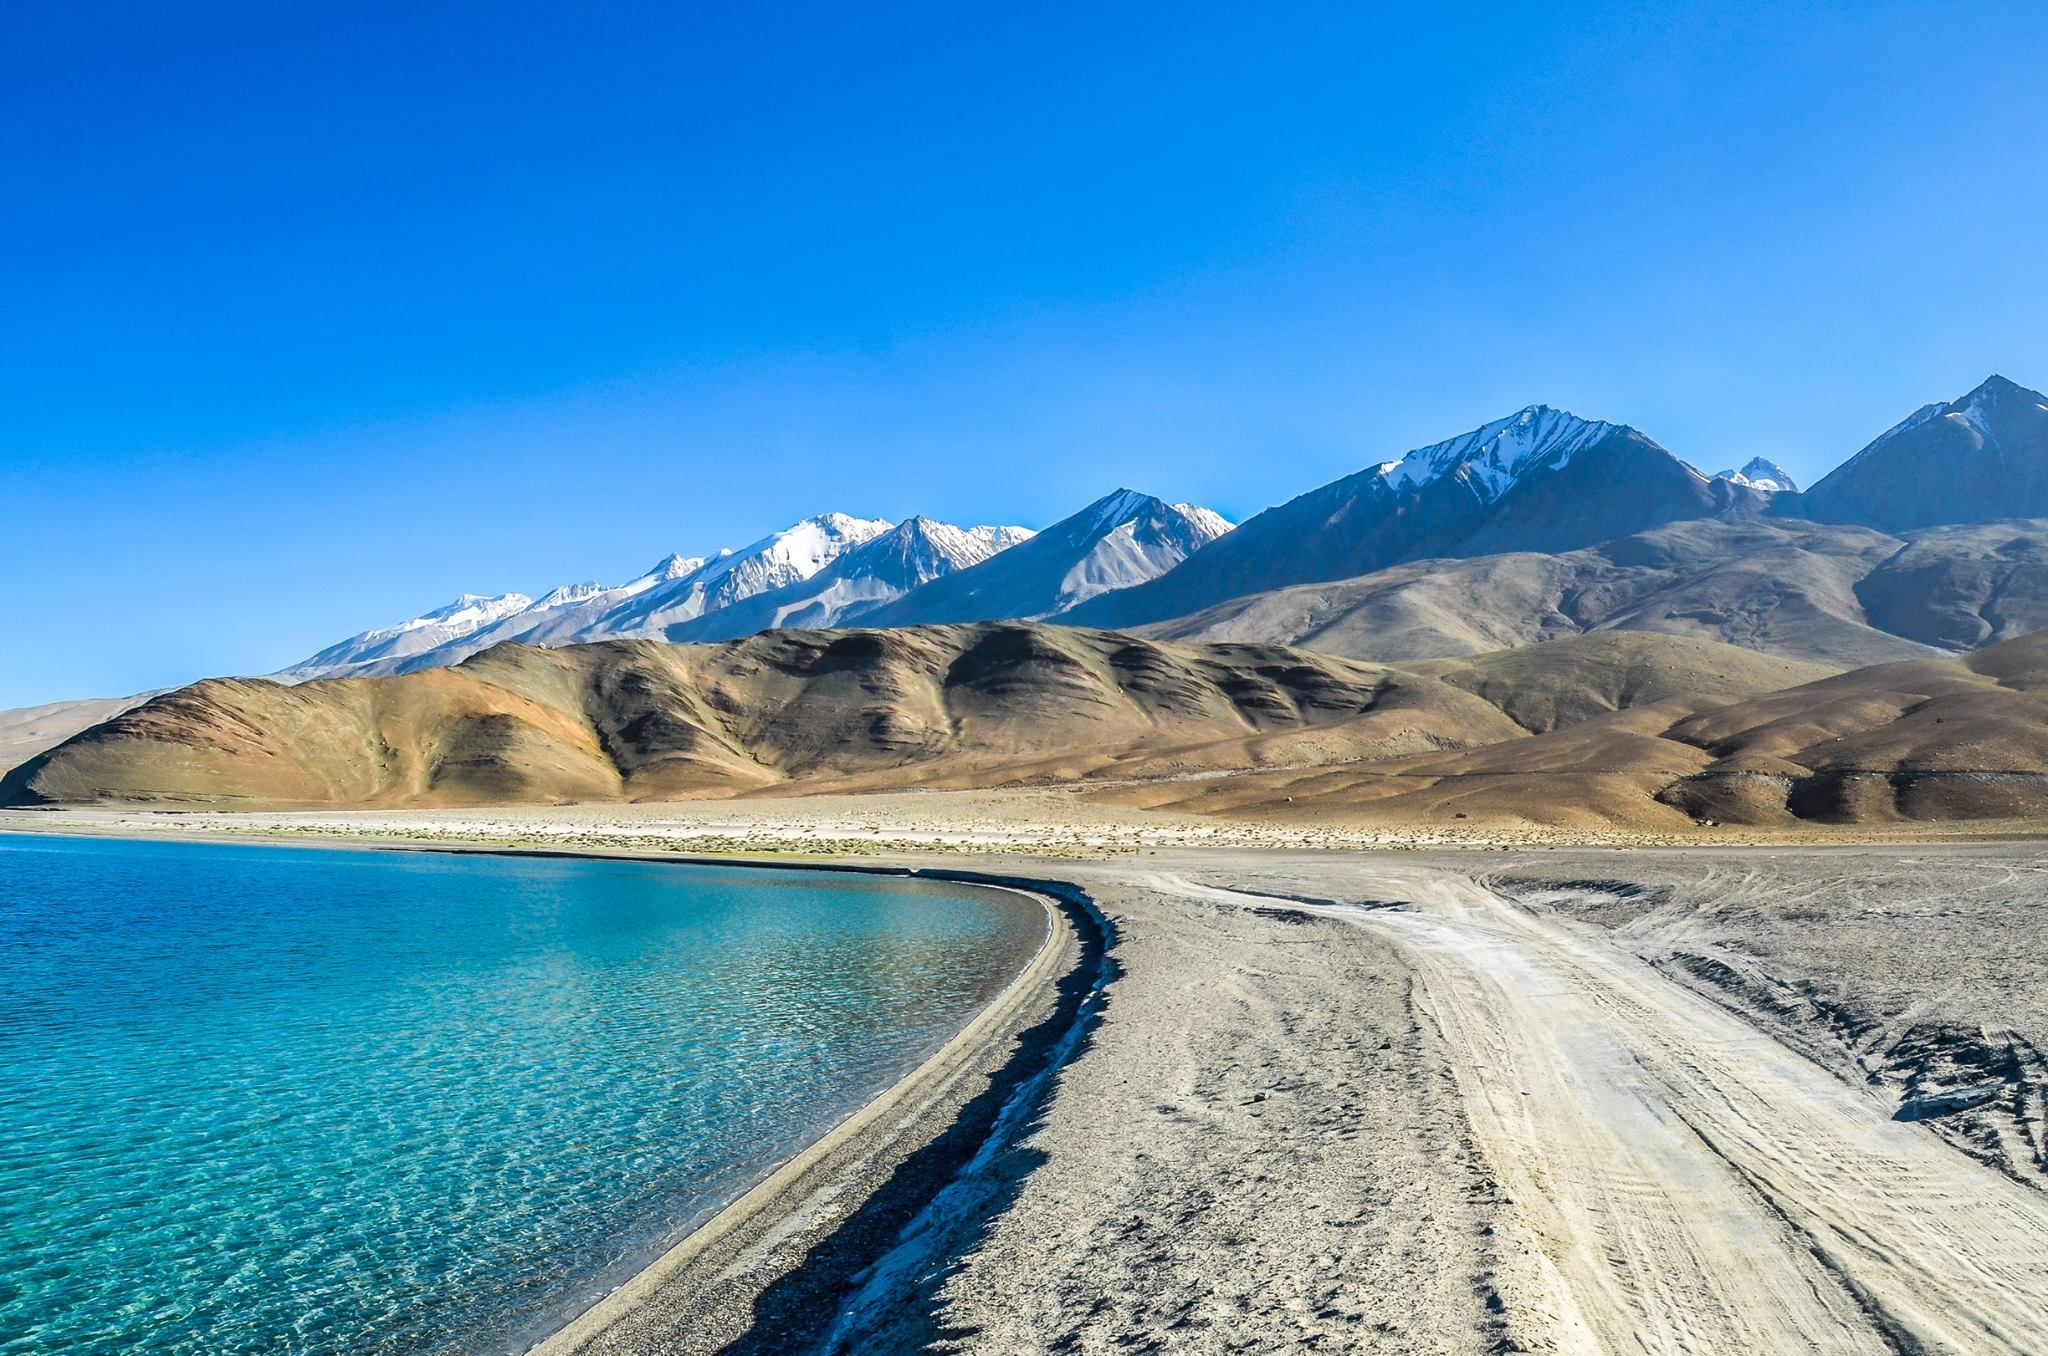 Pangong Tso is located along the border of Ladakh, India and Ngari, Tibet. It is one of the most beautiful lakes on the Tibetan Plateau. I took this photo the other day on the Ladakh side near the small village of Merak. at Pangong Lake.